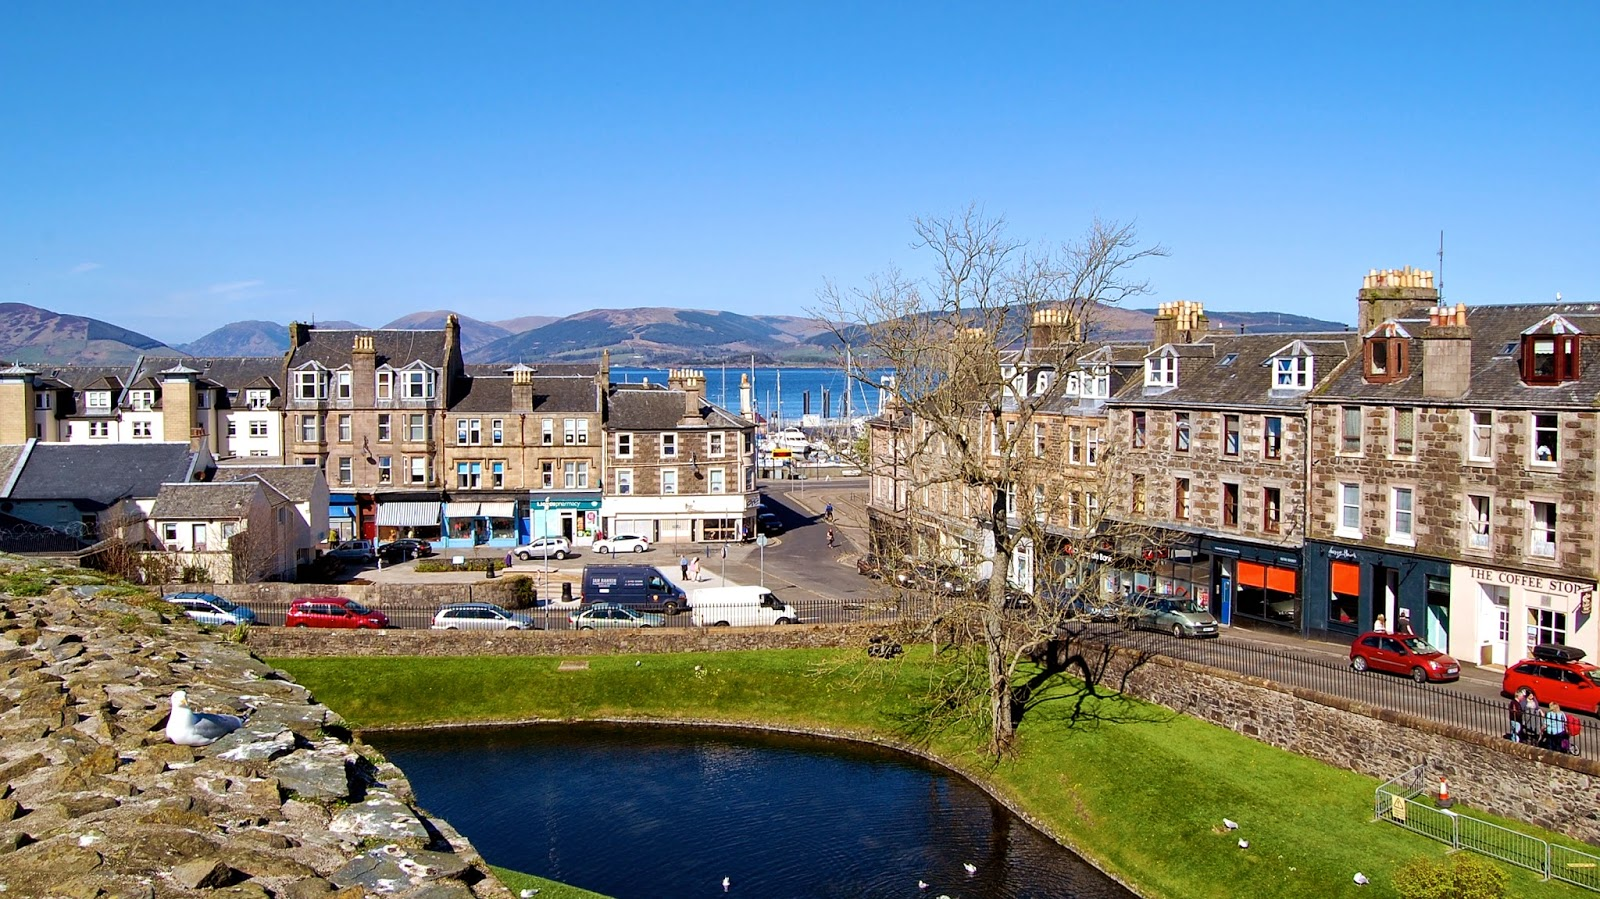 View of Rothesay from the castle walls, Isle of Bute